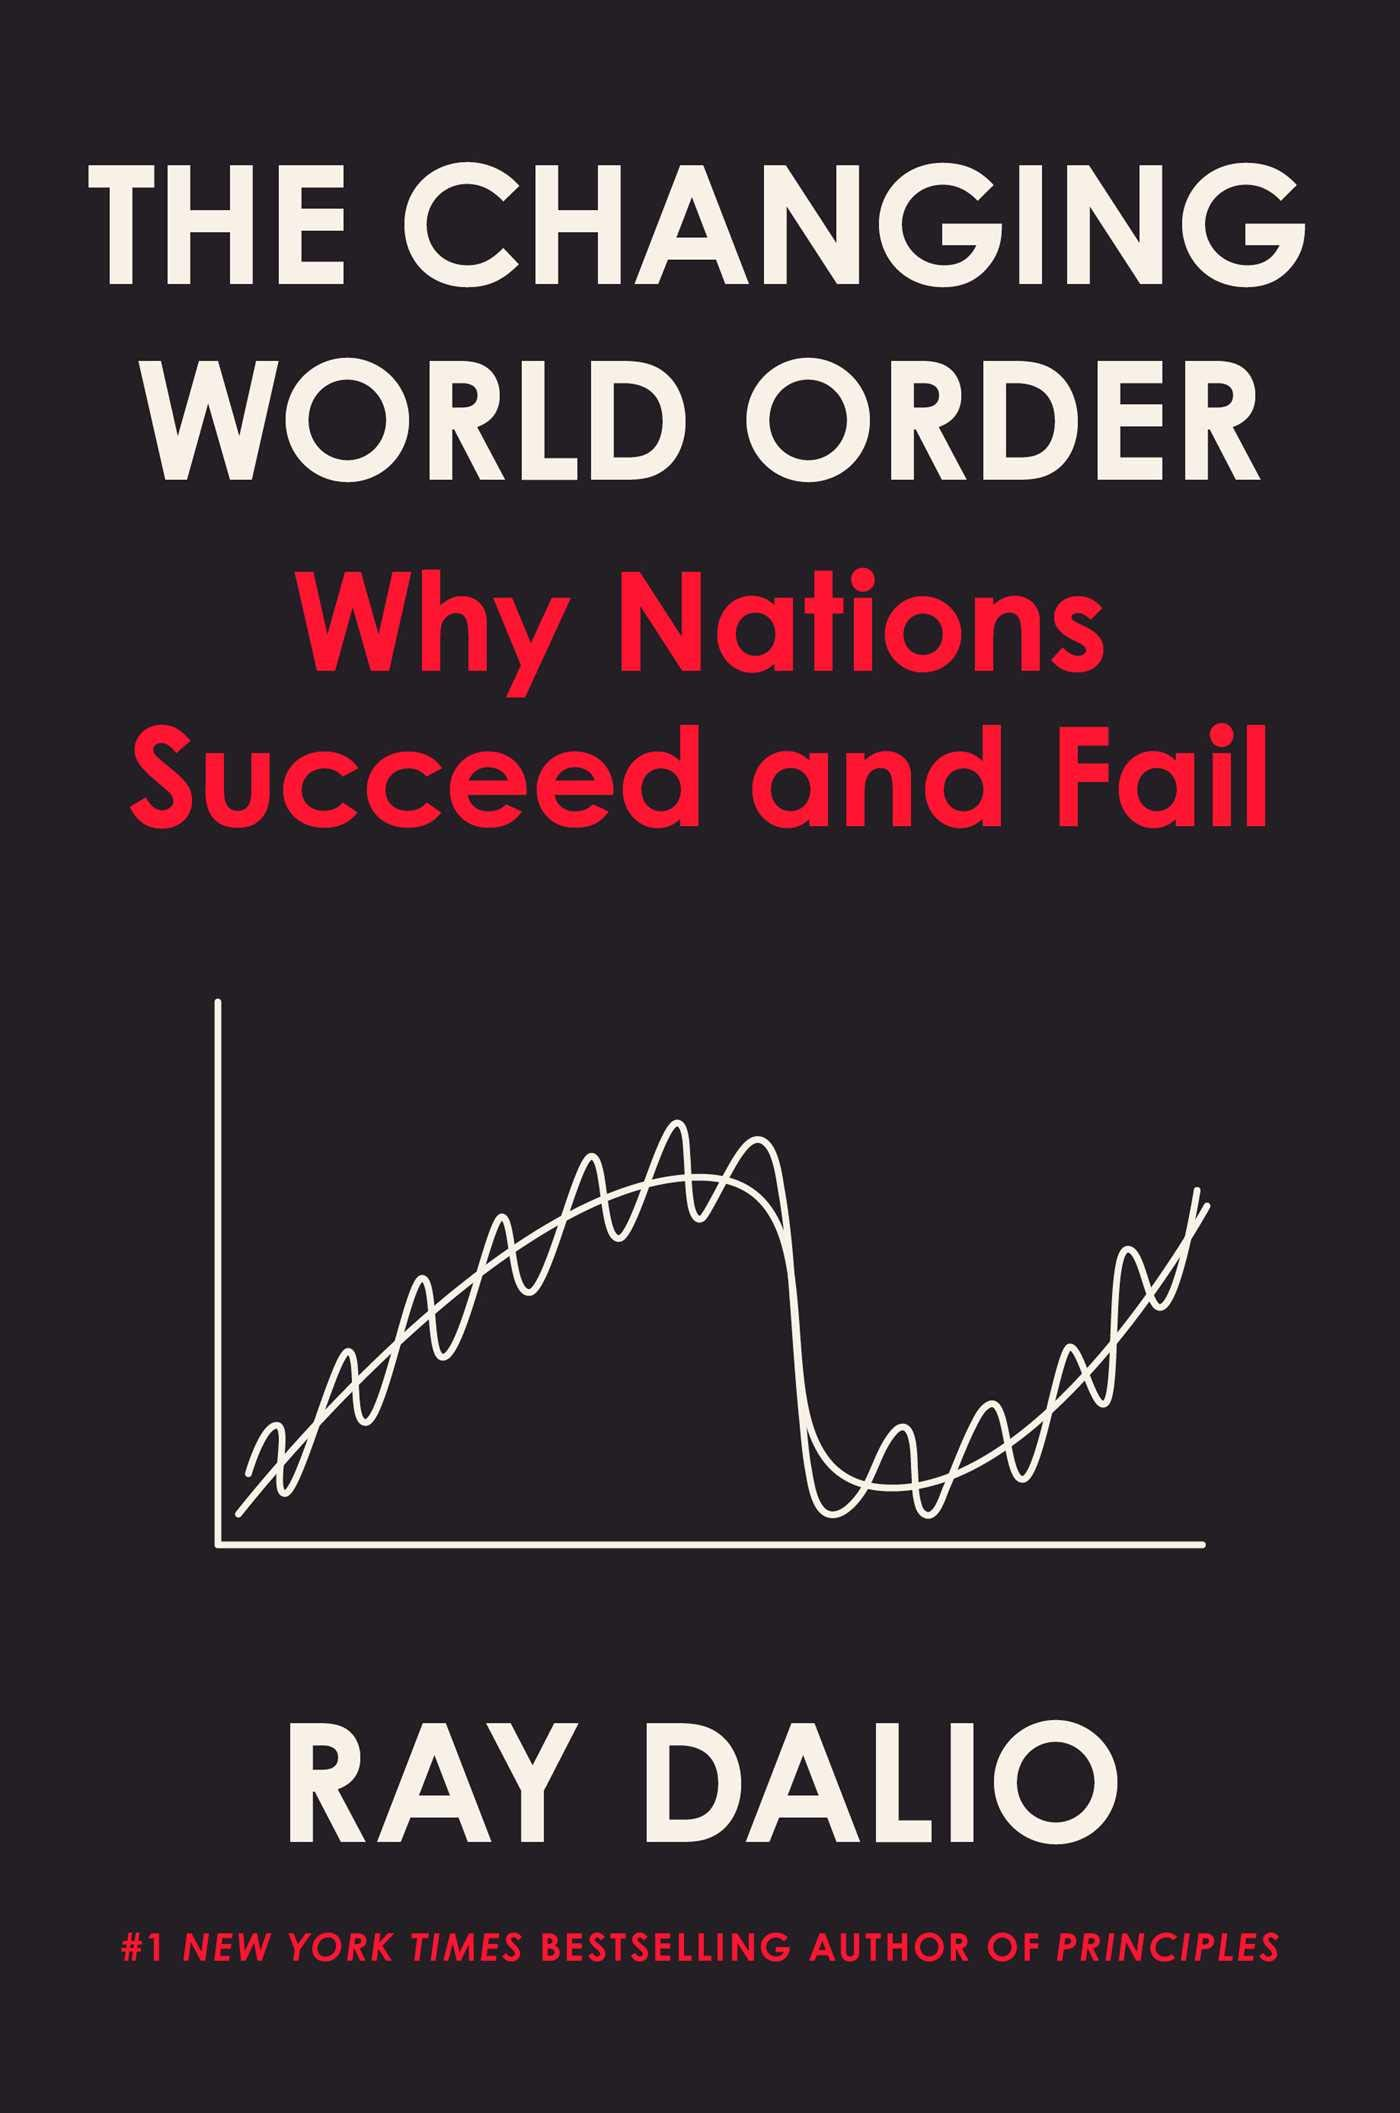 The Changing World Order: Why Nations Succeed and Fail: Dalio, Ray:  9781982160272: Amazon.com: Books